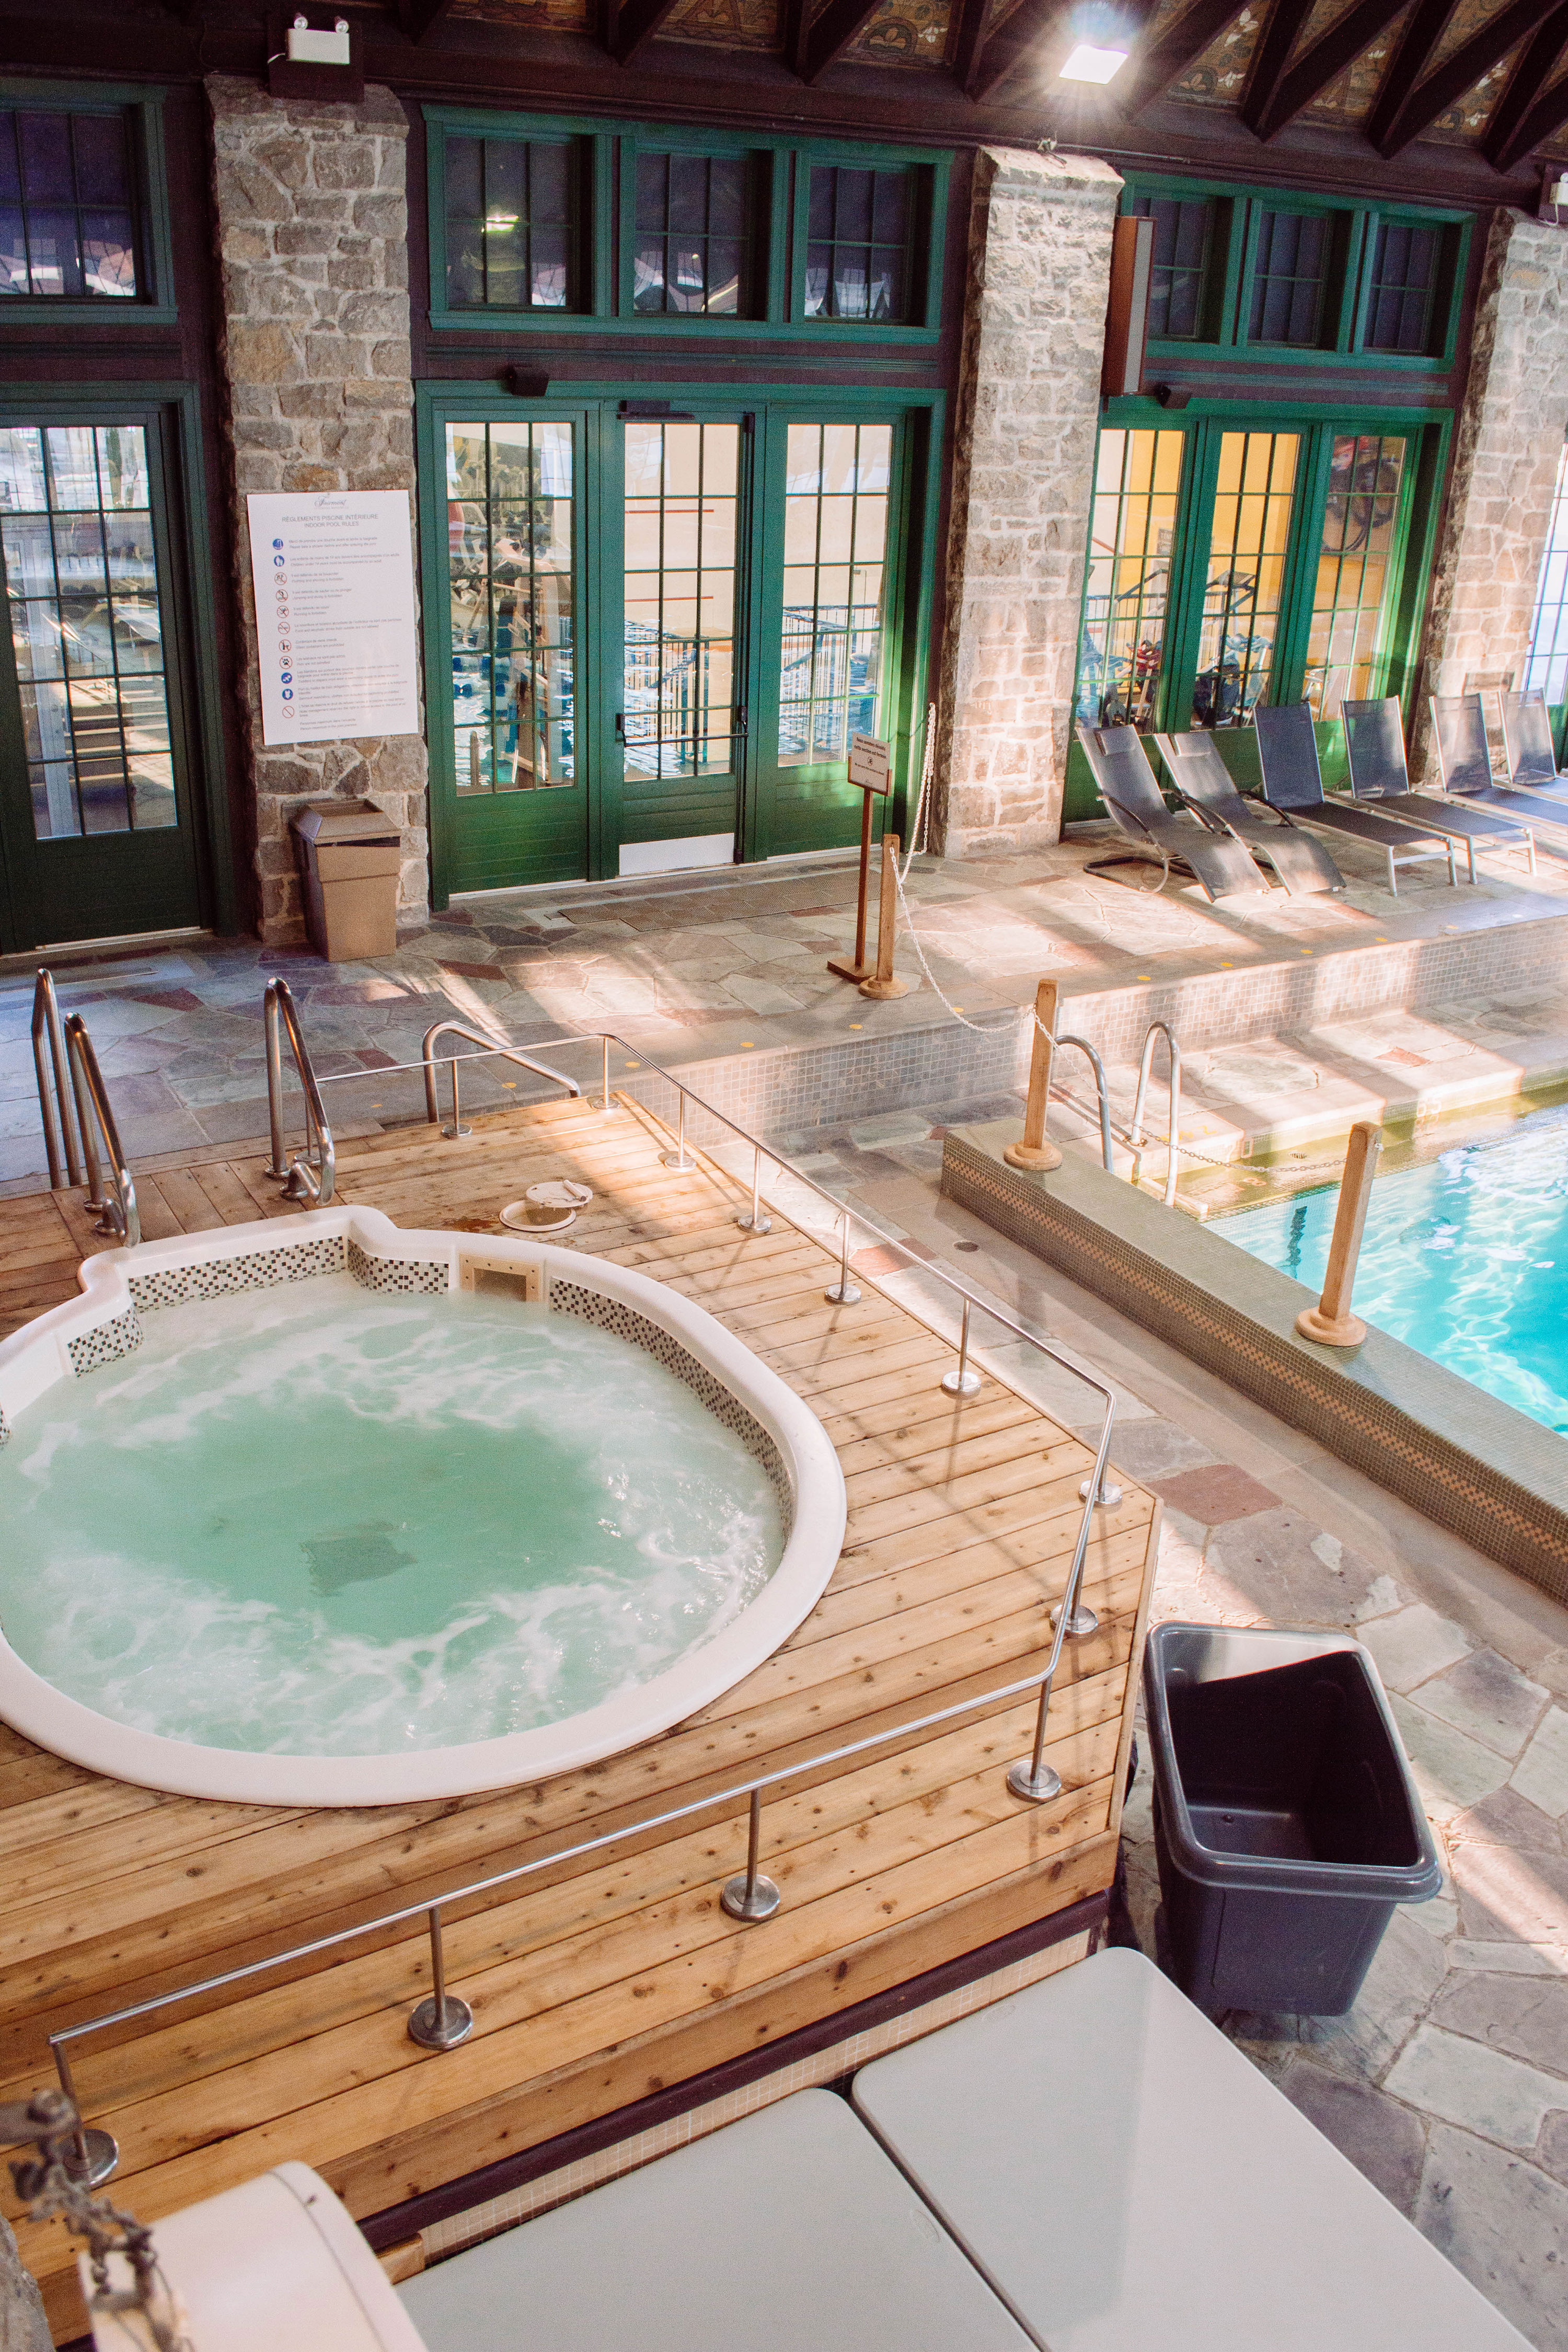 A full review on one of Quebec's most beautiful resorts: Fairmont le Château Montebello